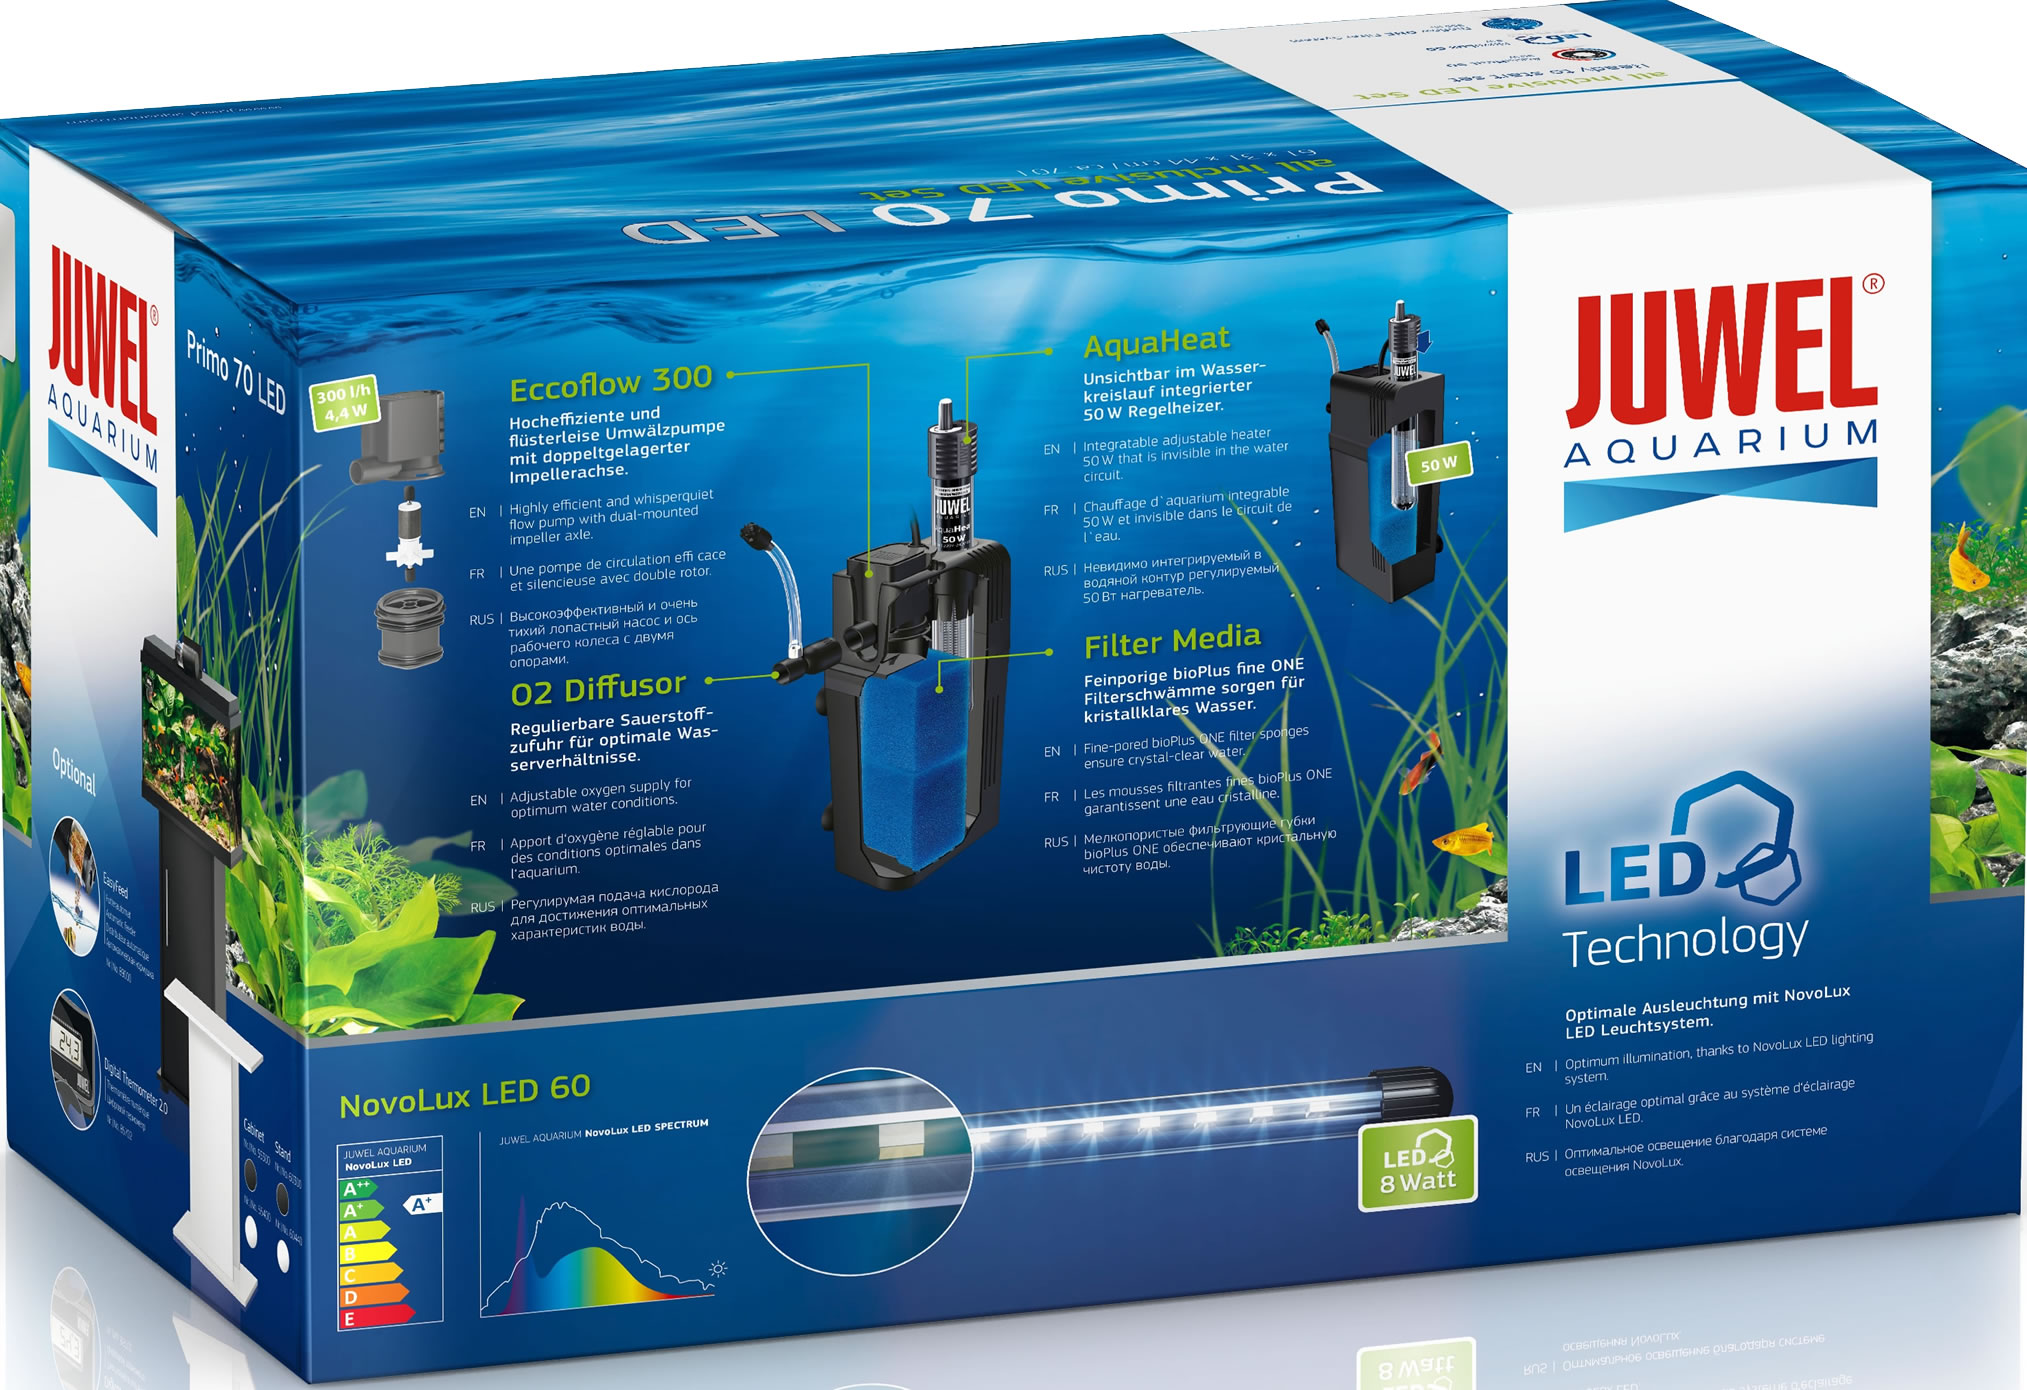 juwel primo 70 led aquarium set schwarz. Black Bedroom Furniture Sets. Home Design Ideas